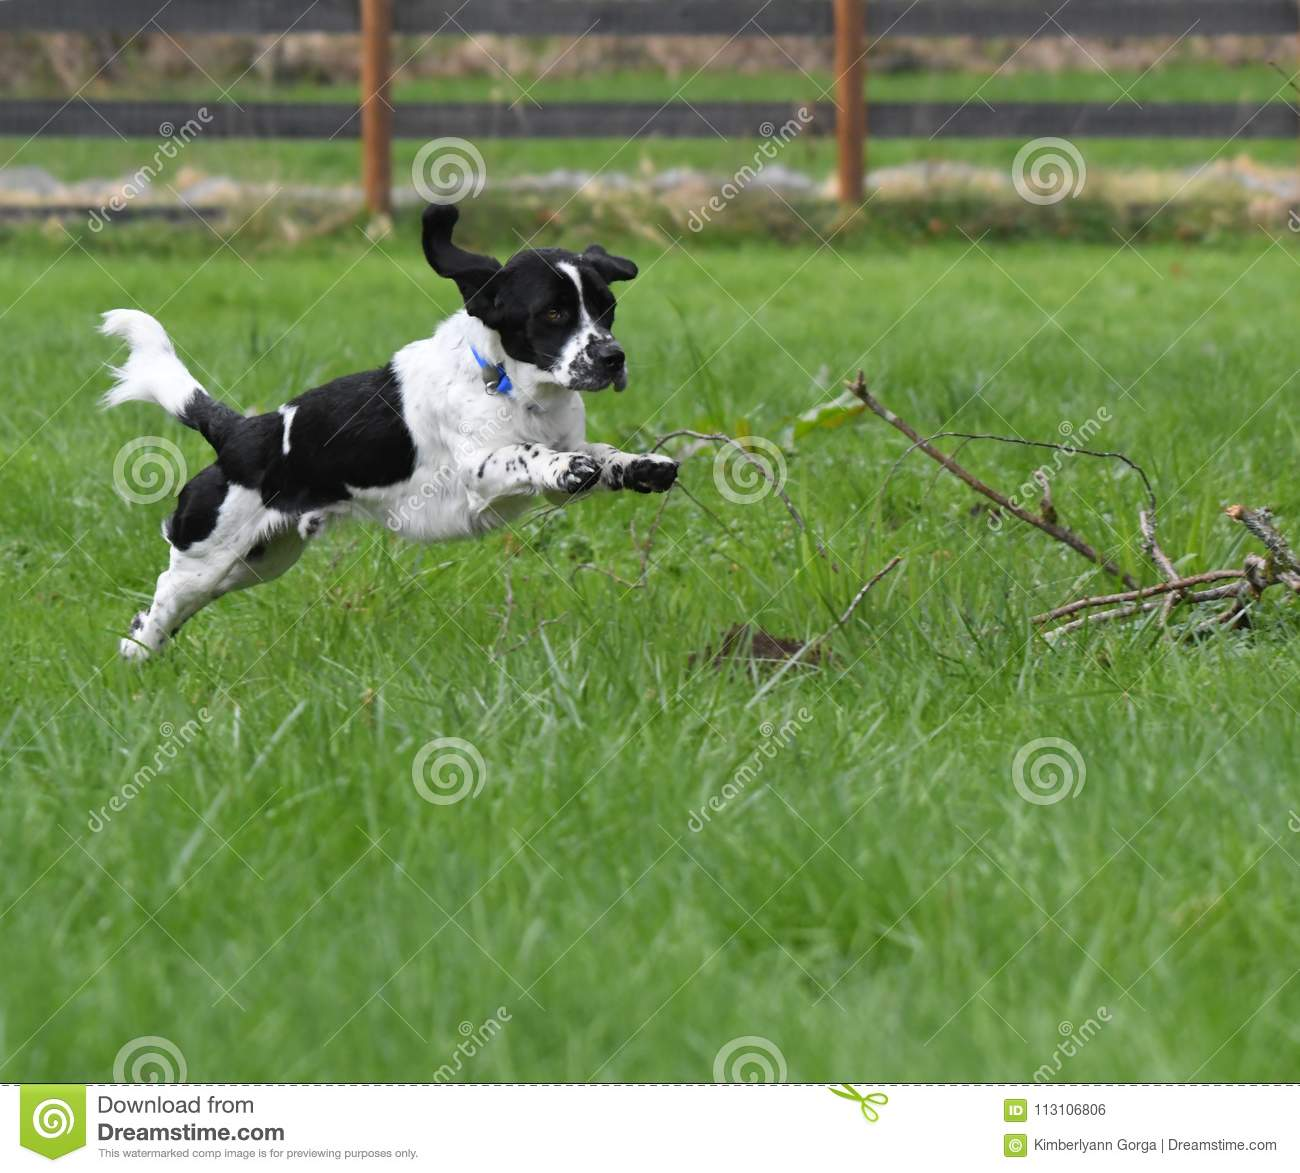 Leaping Black and White English Setter